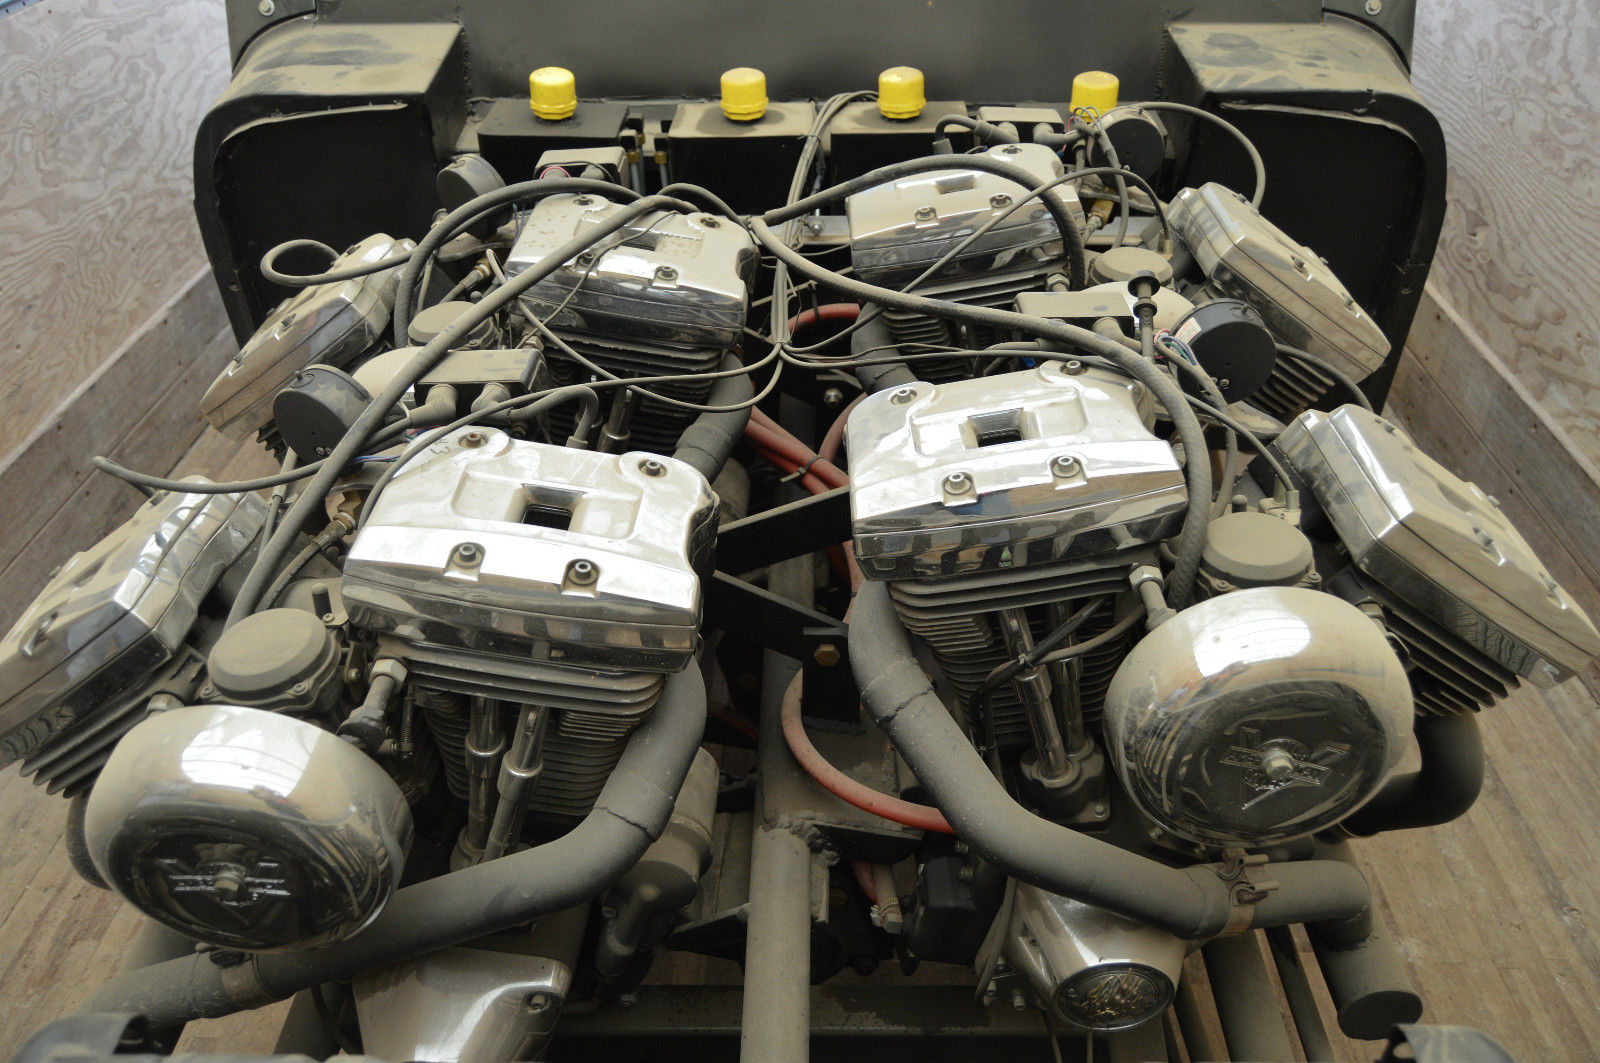 For Sale: Jeep With Four Harley Motorcycle Engines – Engine